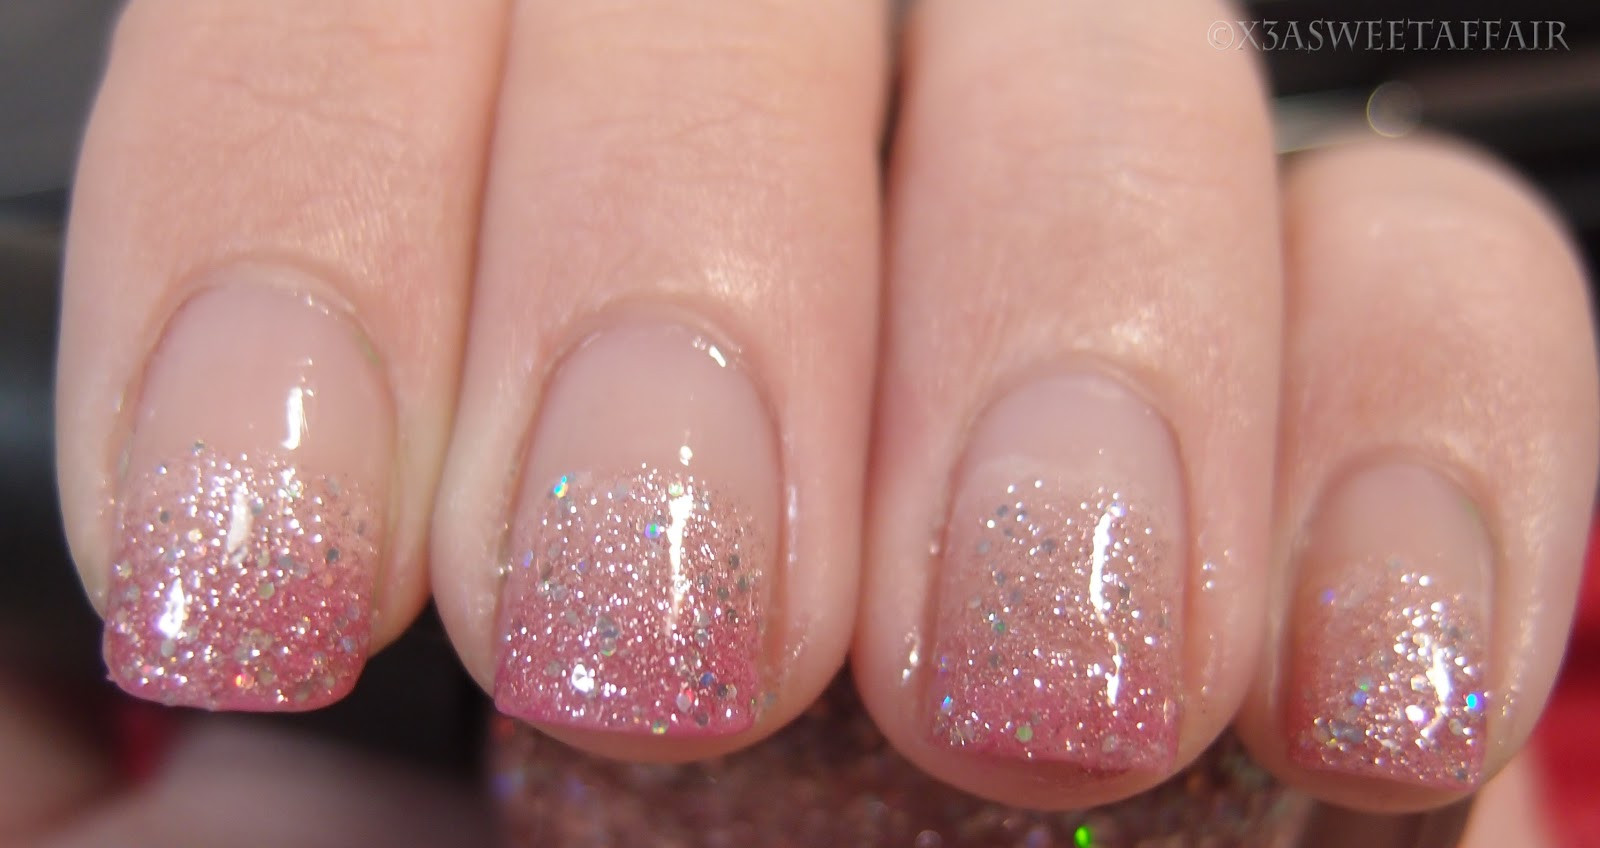 Ombre Nails With Glitter  x3ASweetAffair Naturally Nails Pink ombre glitter